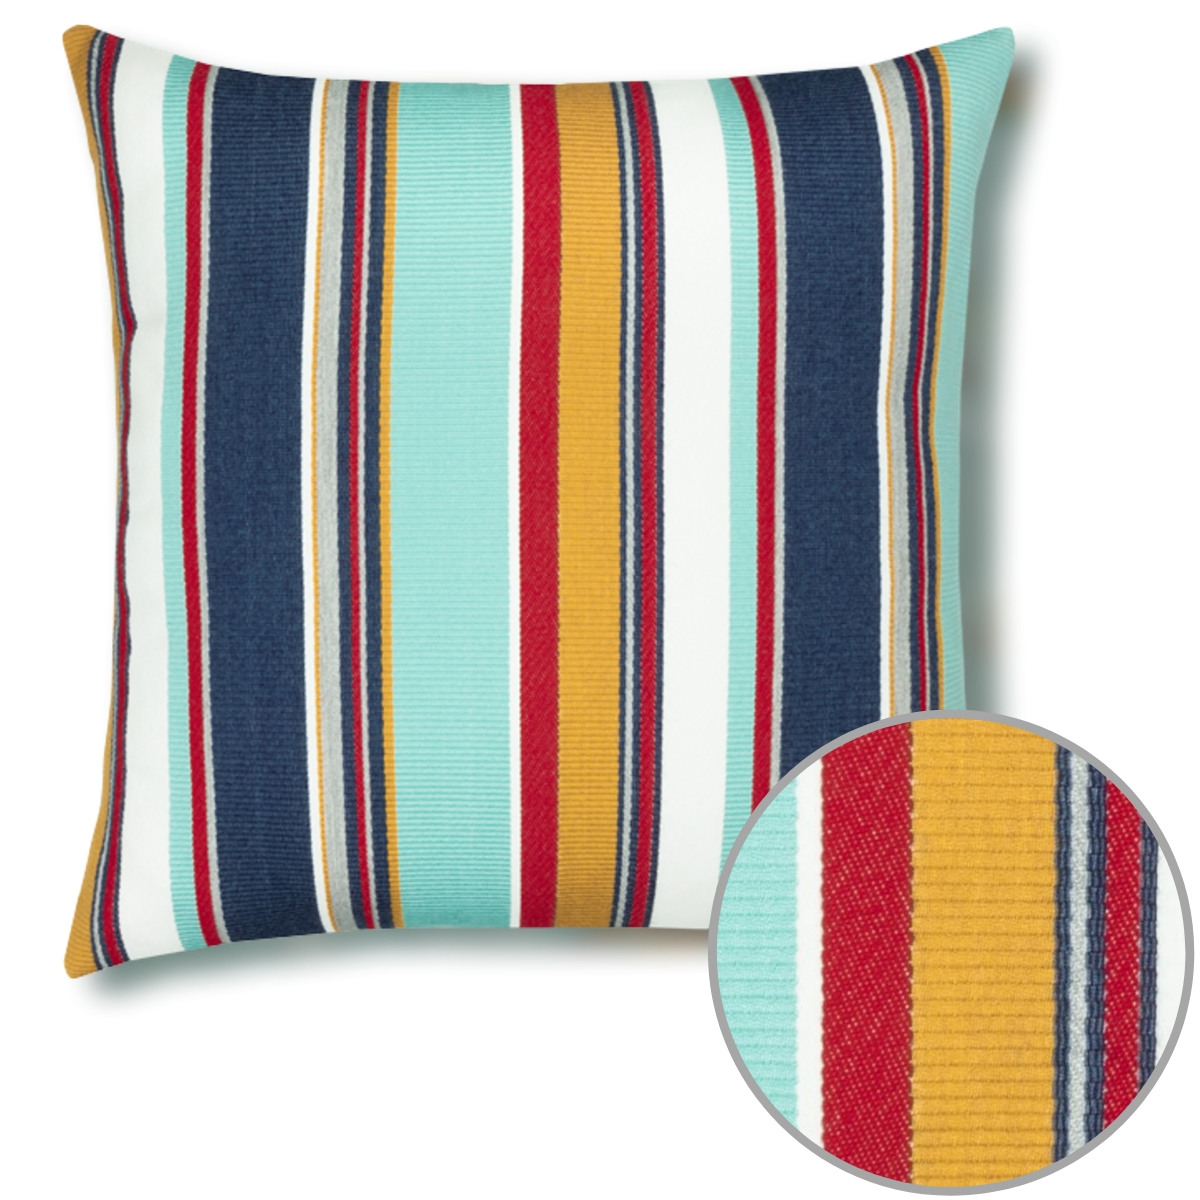 sicily-stripe-pillow detail